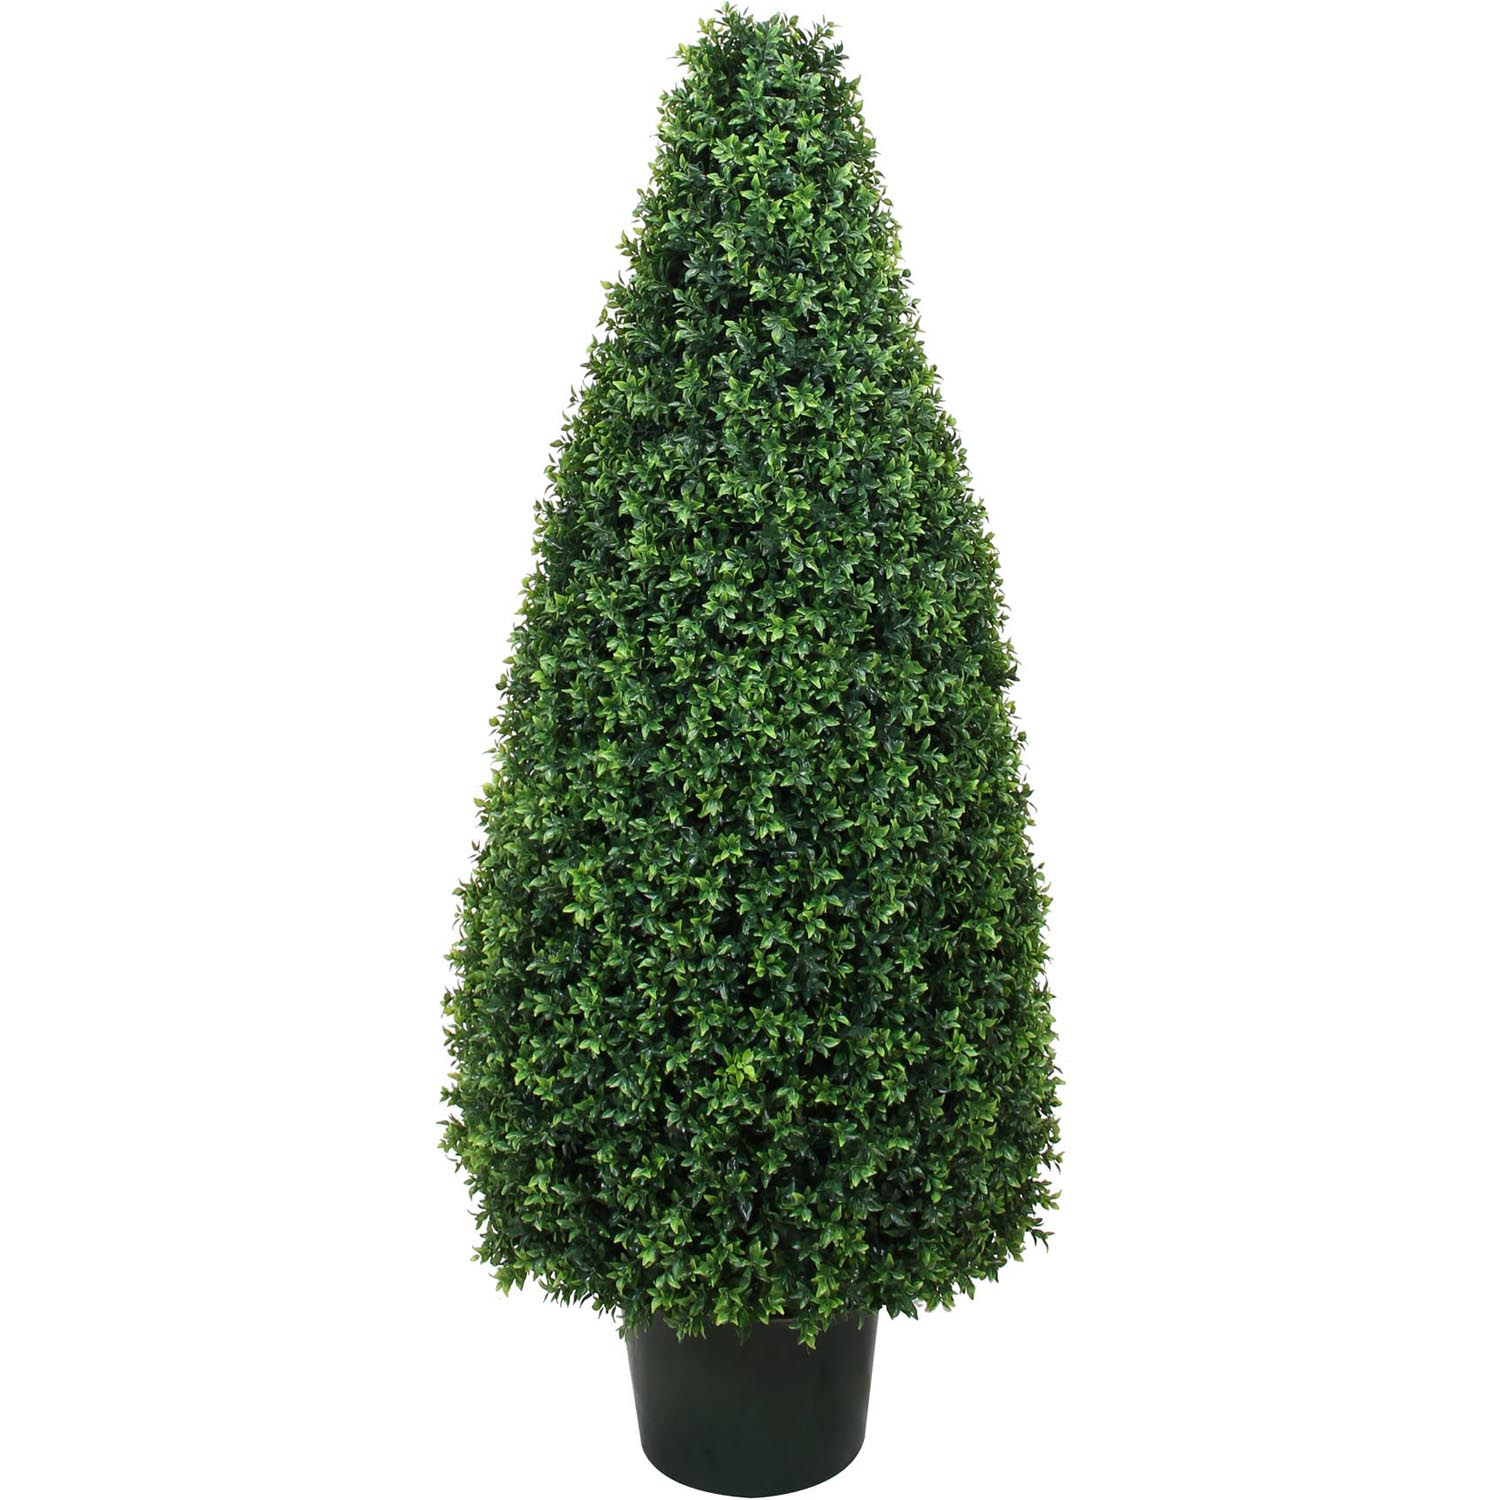 42 Inch Uv Protected Basil Cone Topiary: Potted